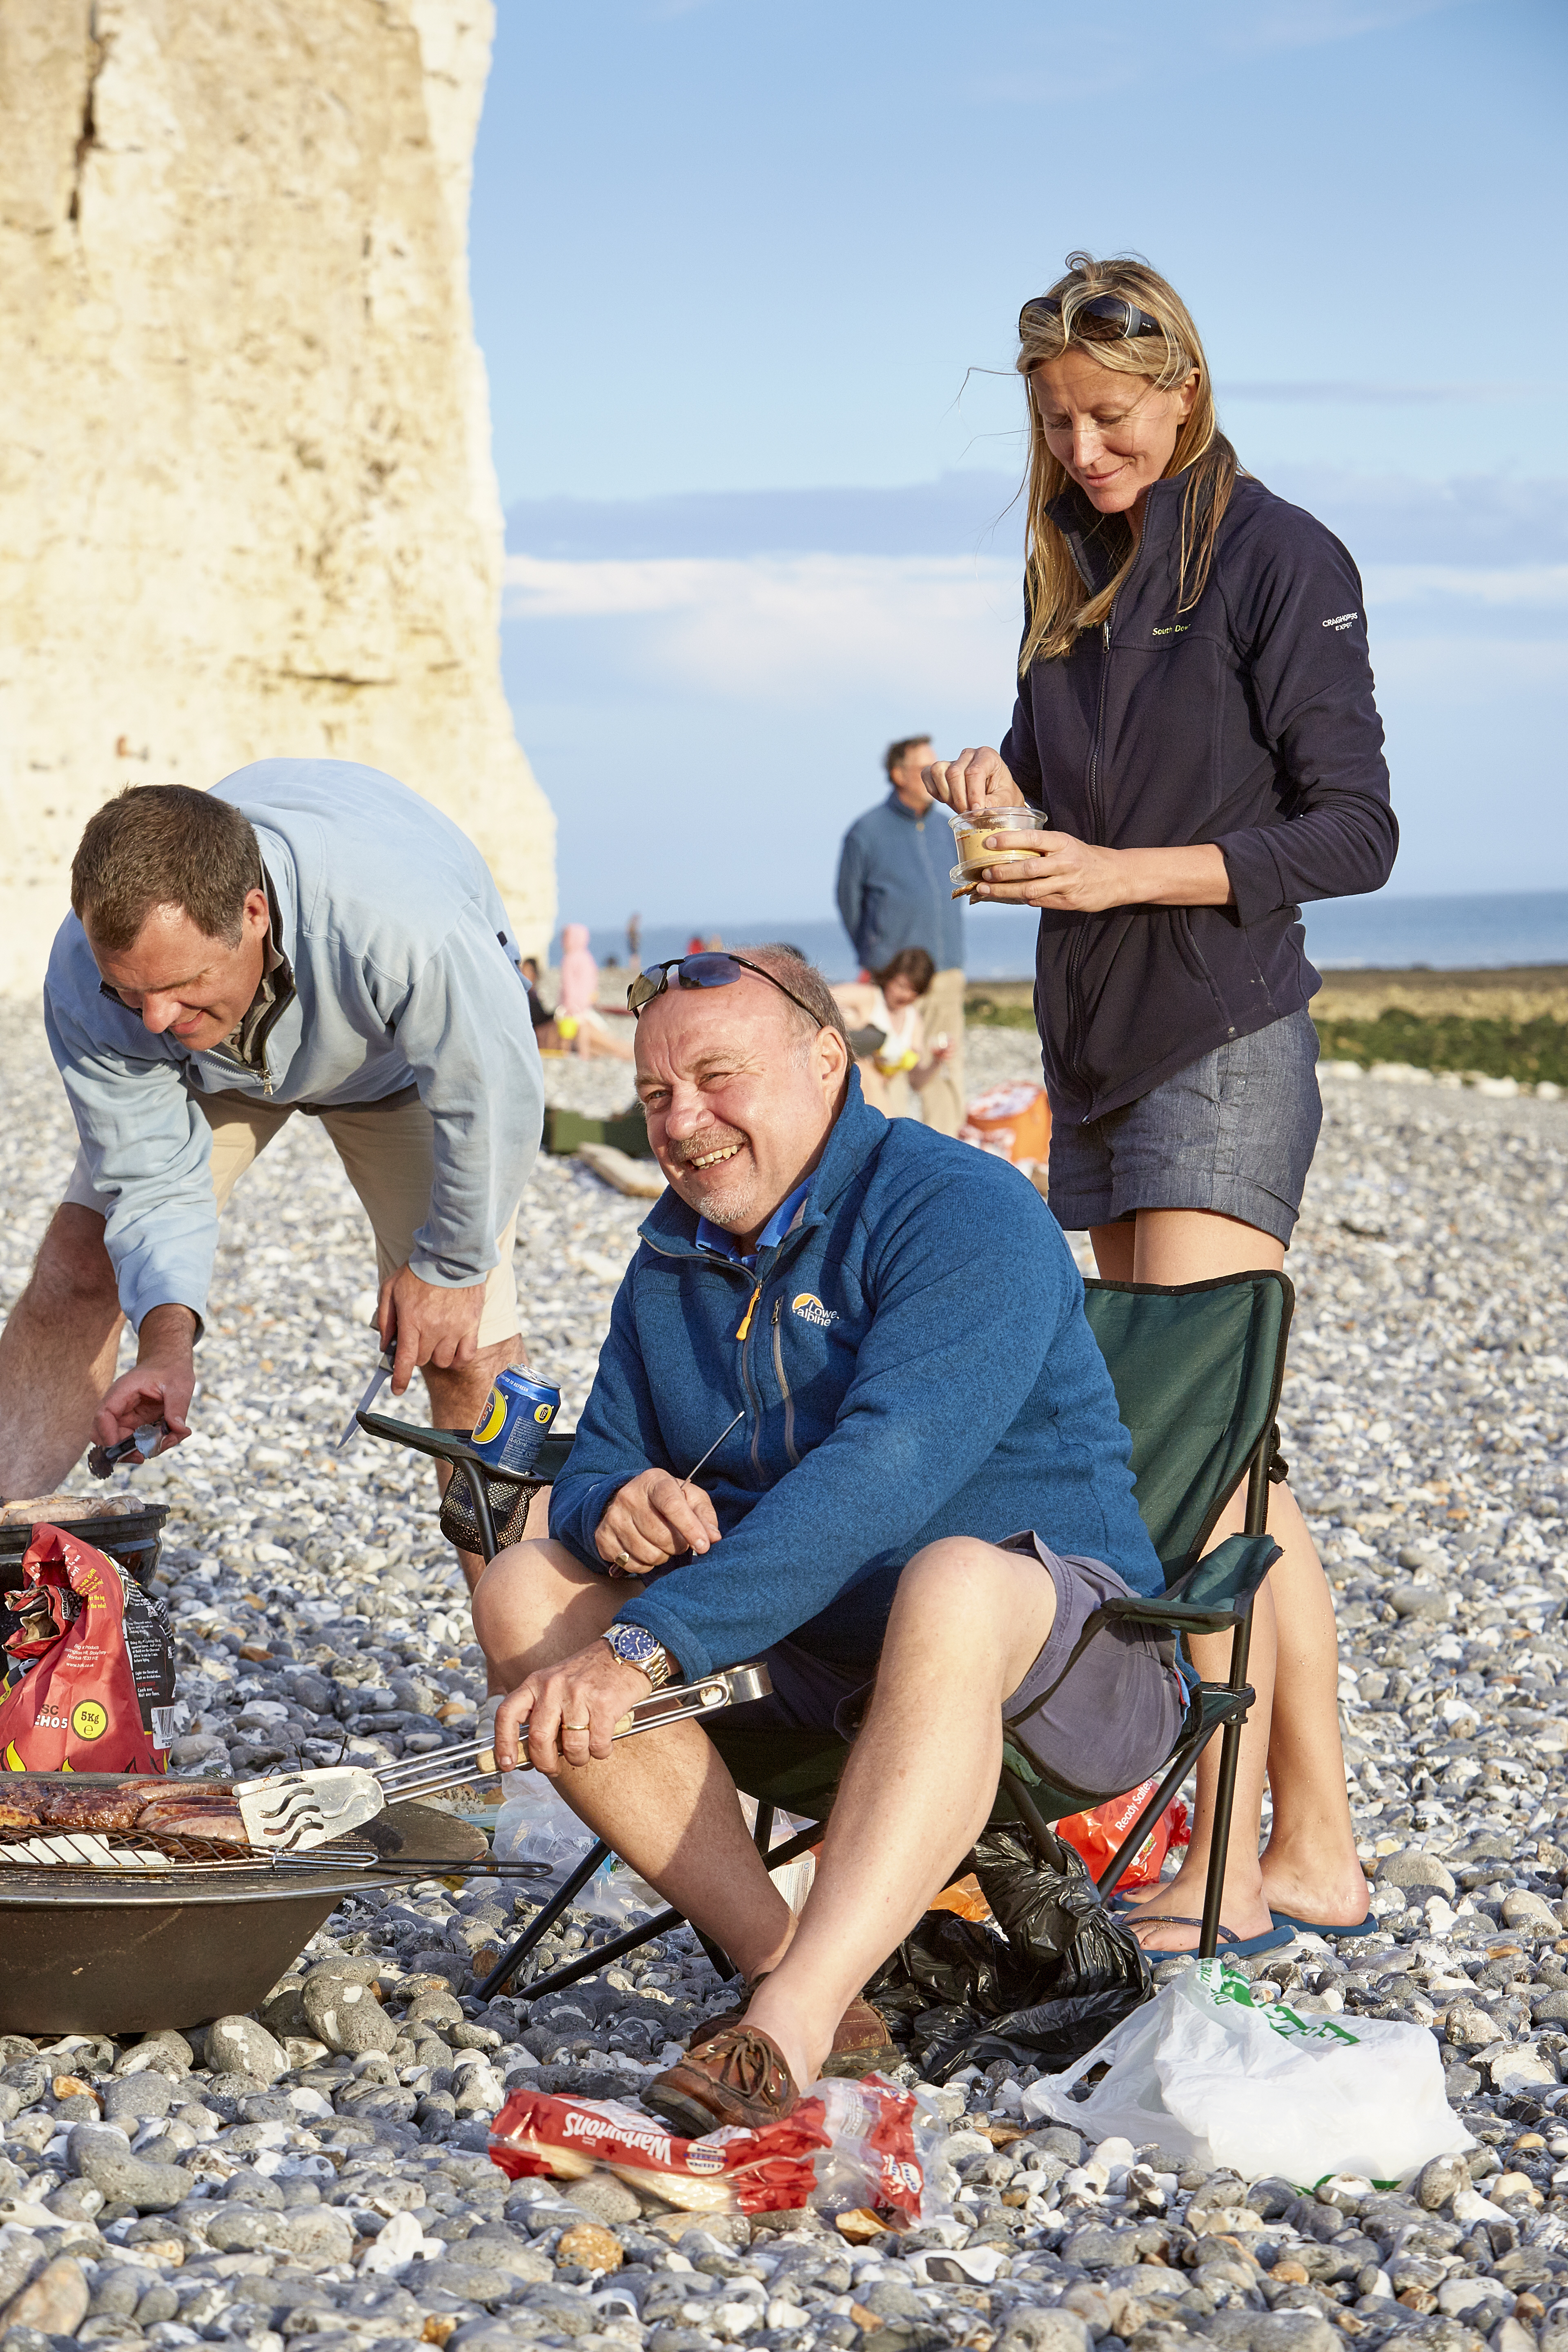 Visitors cooking food on the beach at Birling Gap and the Seven Sisters, East Sussex. Stretching between Birling Gap and Cuckmere Haven are the world-famous Seven Sisters chalk cliffs.